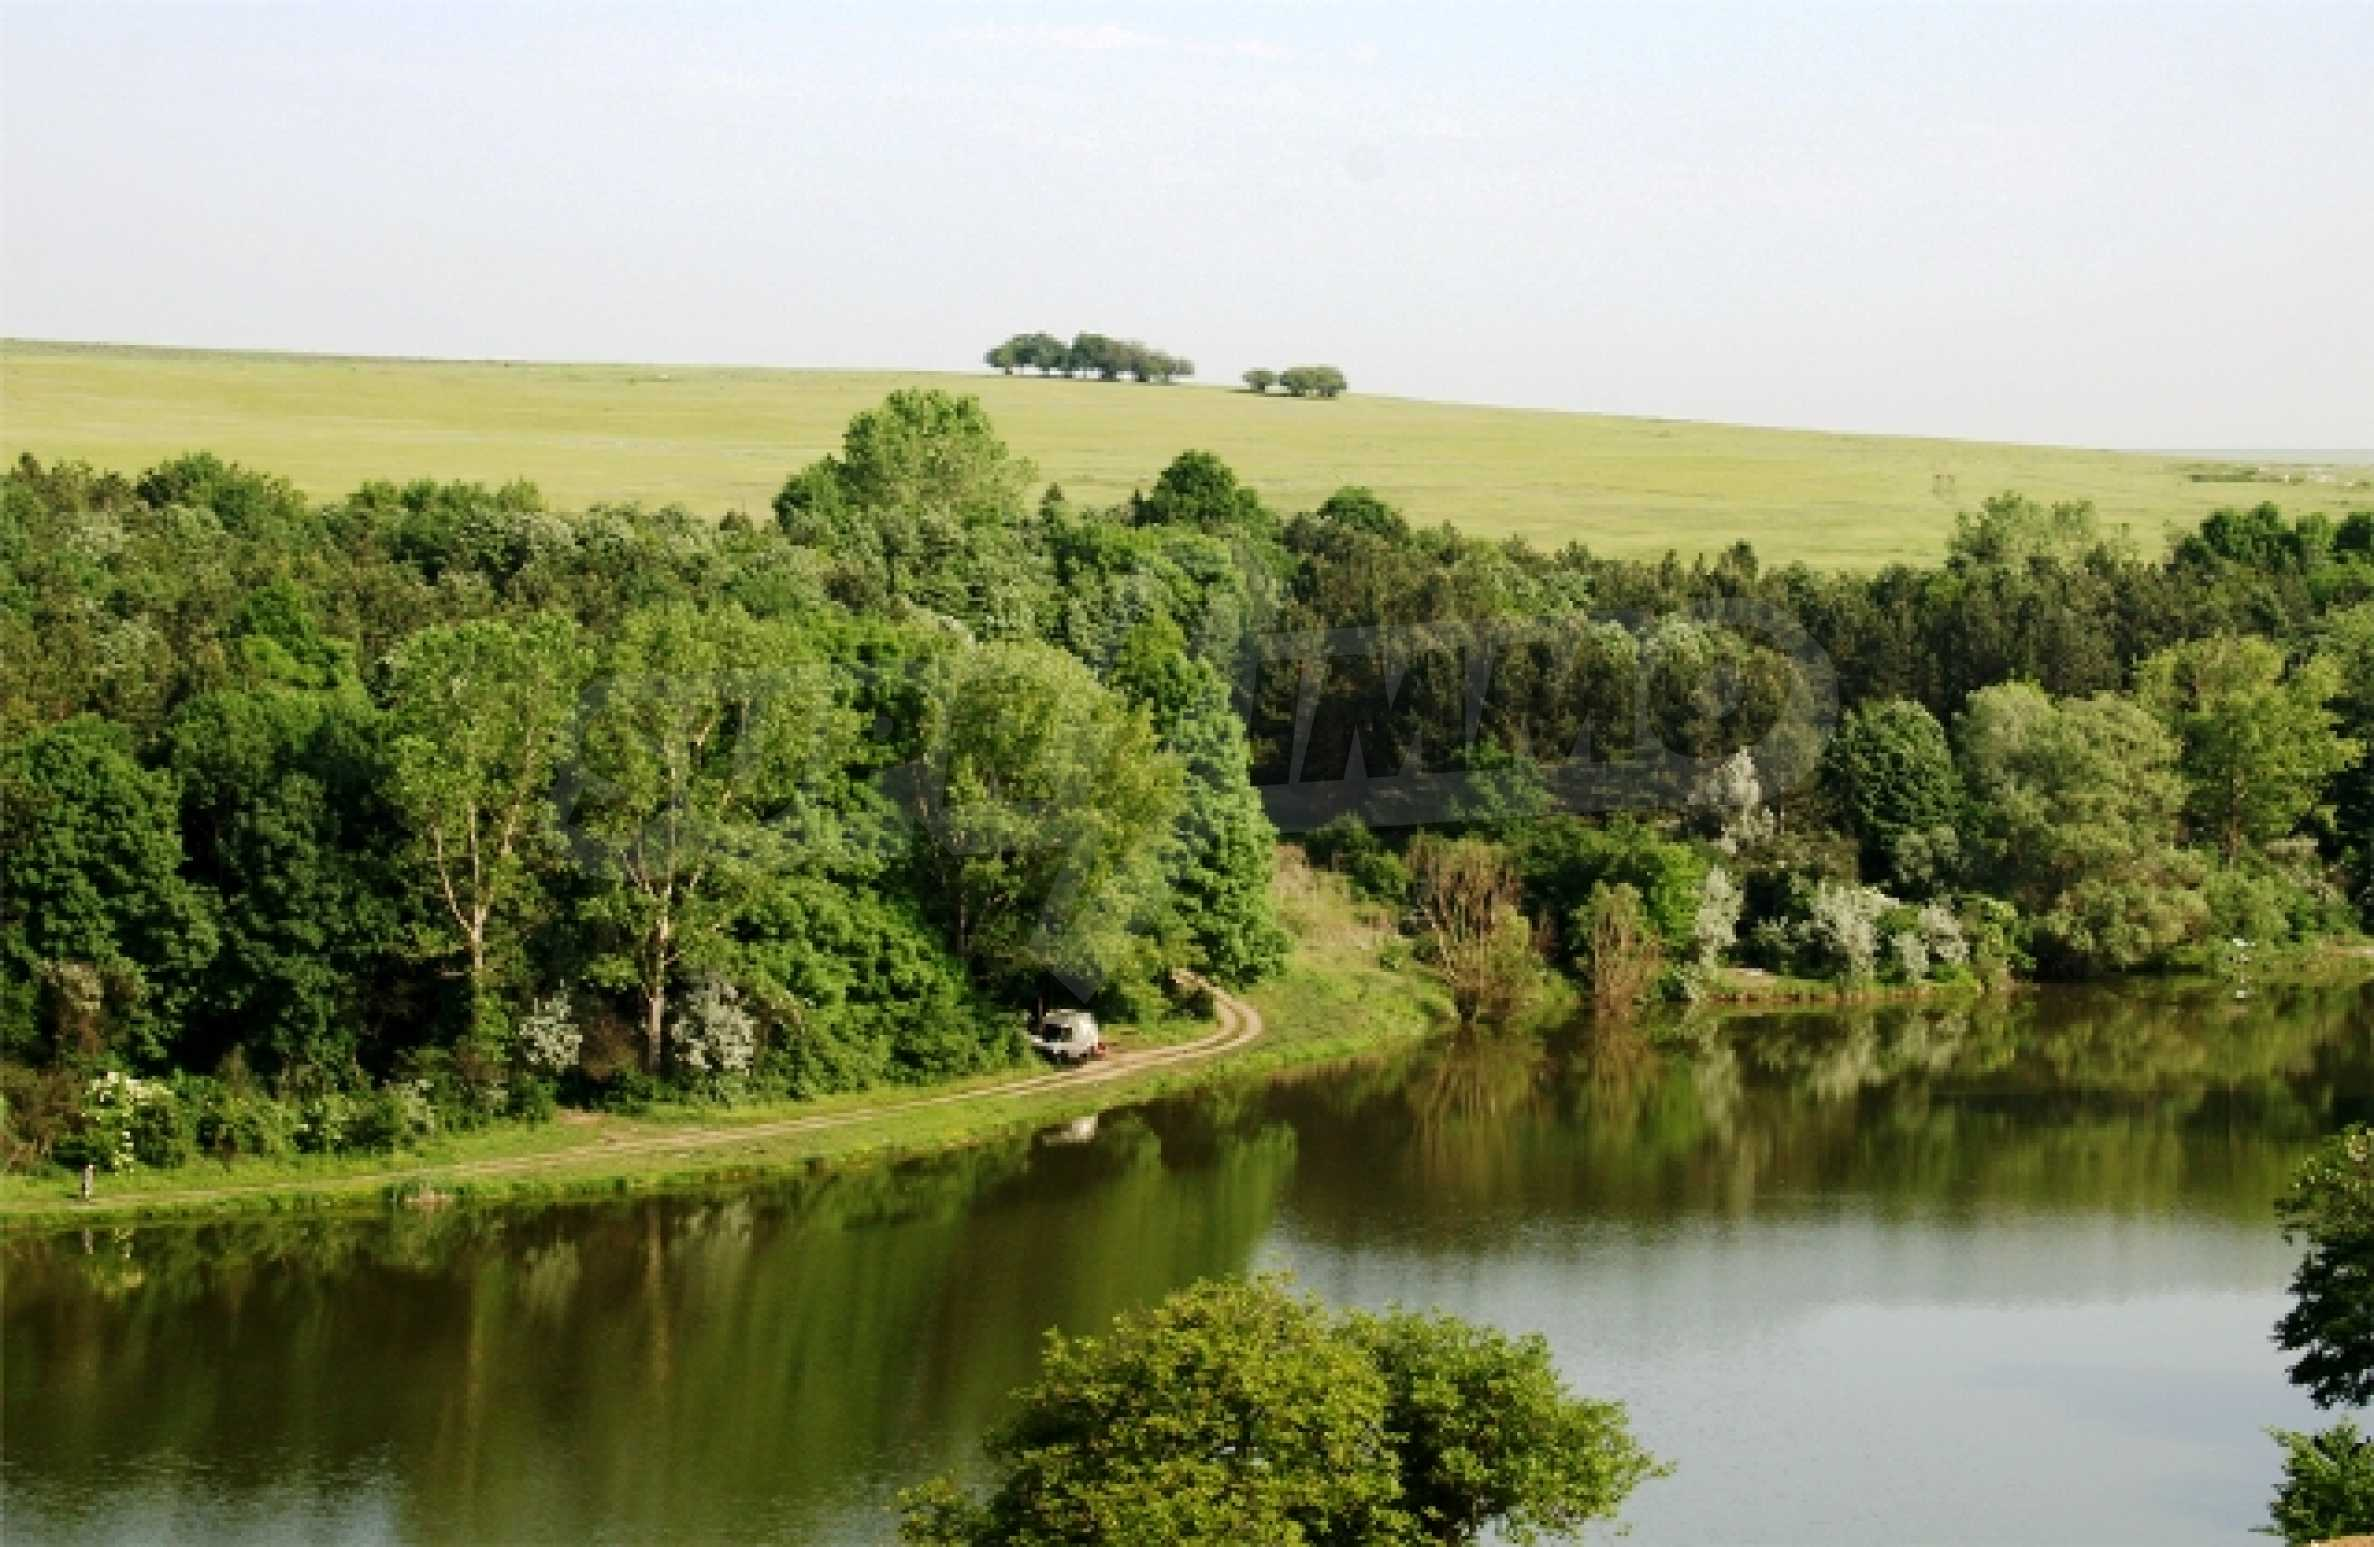 An extremely hot offer for regulated plots for sale by a beautiful lake 16 miles away from the sea 16